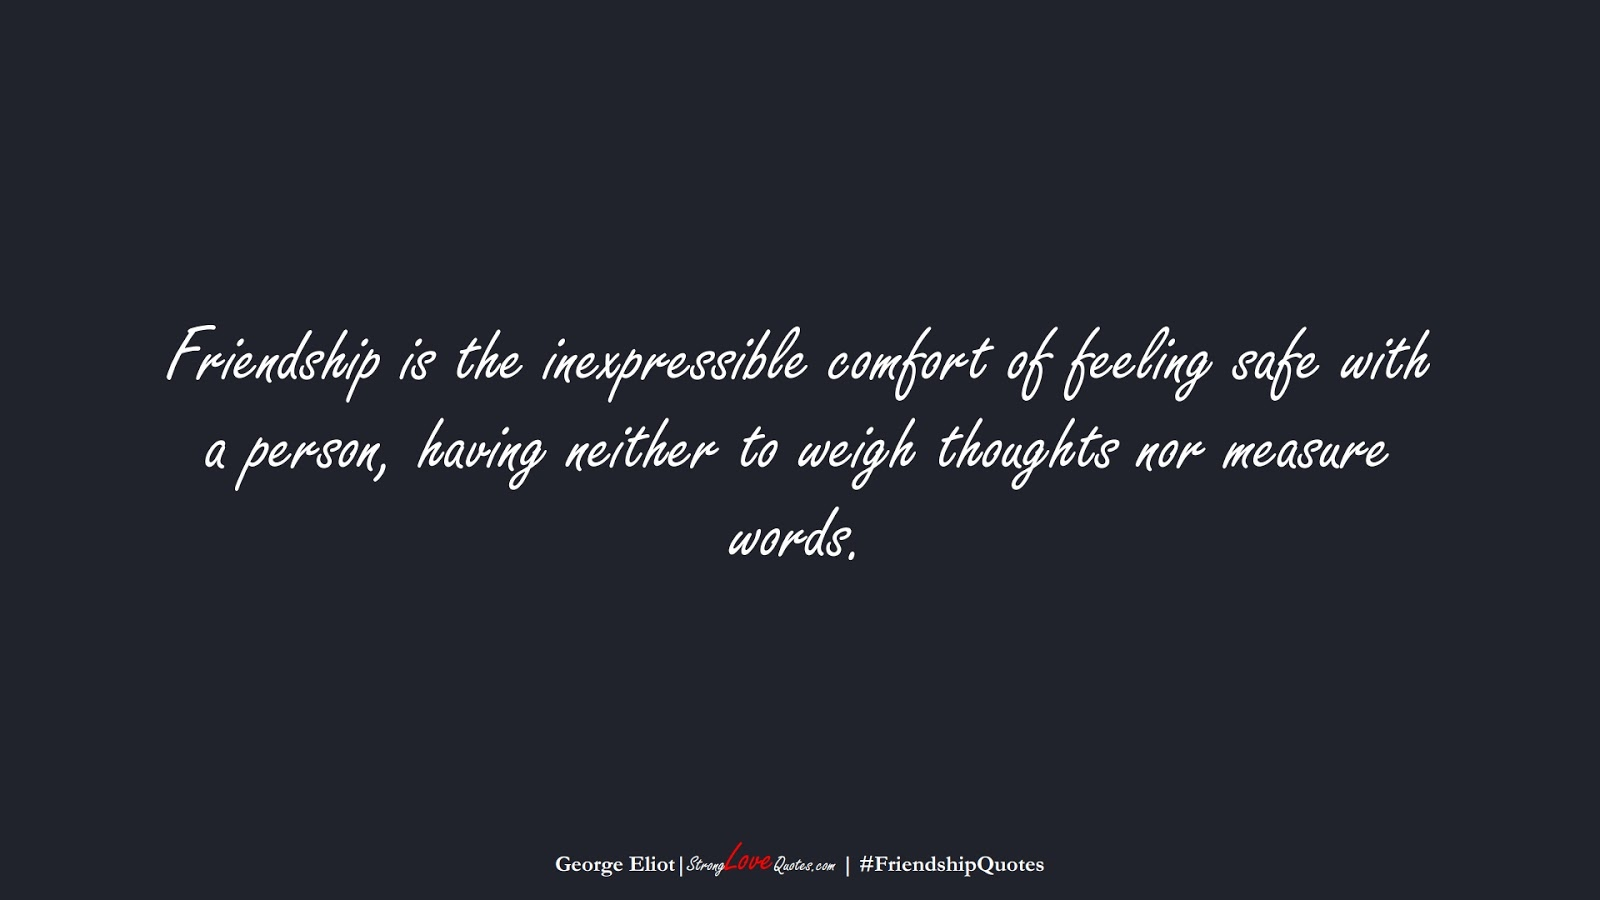 Friendship is the inexpressible comfort of feeling safe with a person, having neither to weigh thoughts nor measure words. (George Eliot);  #FriendshipQuotes